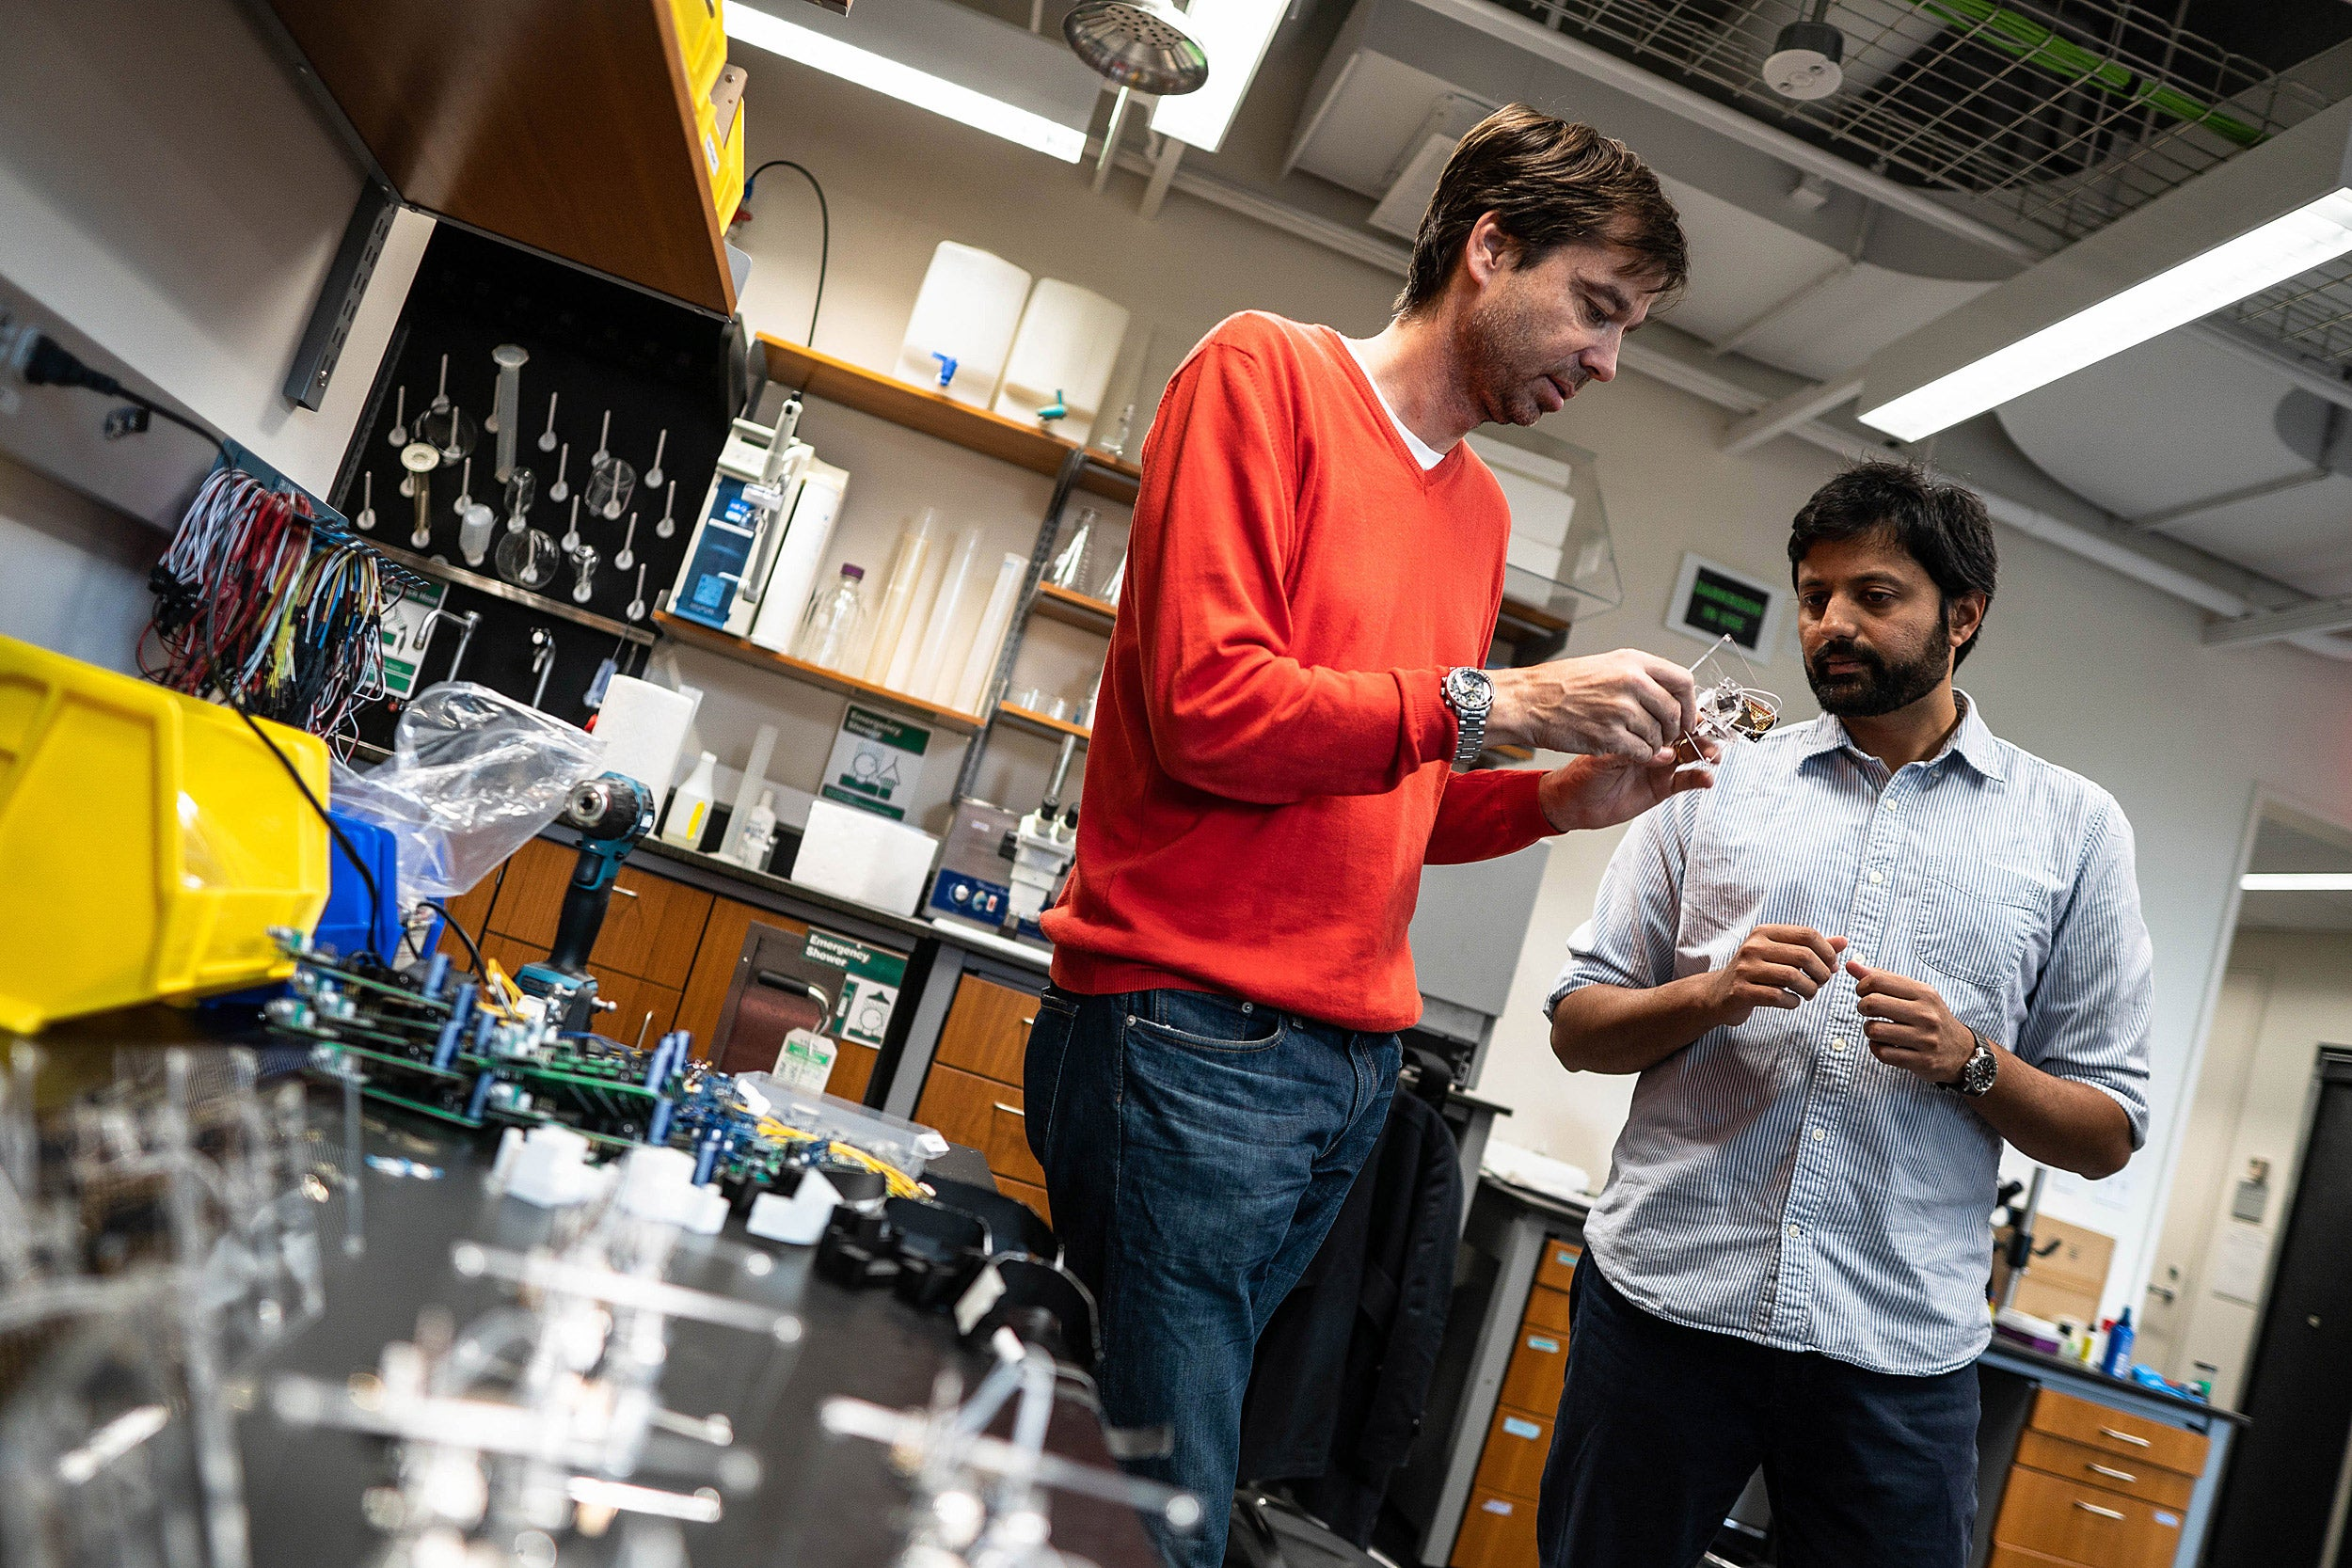 Two researchers talking in a lab.